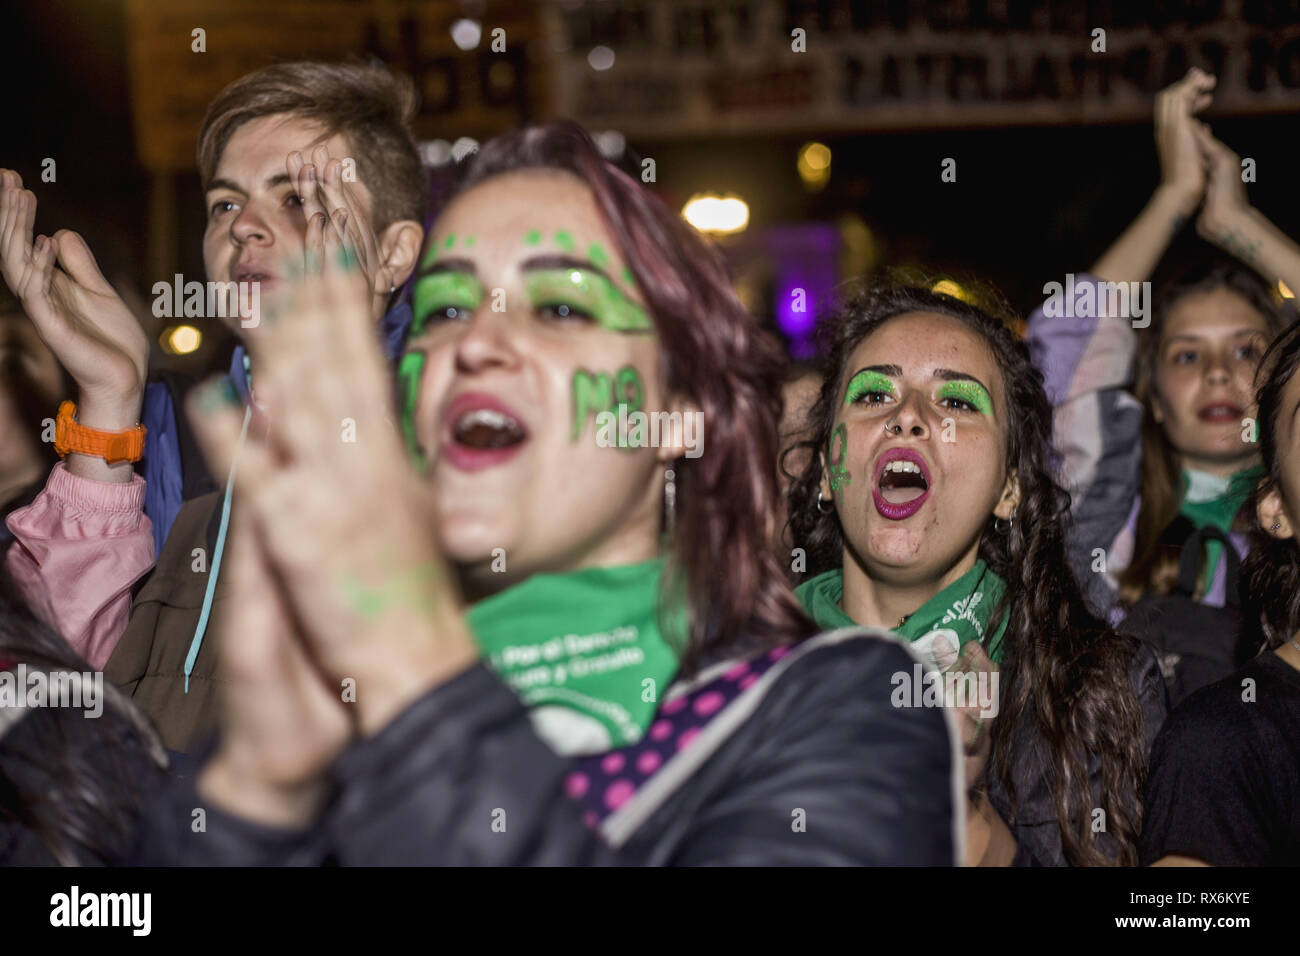 Buenos Aires, Federal Capital, Argentina. 8th Mar, 2019. On the occasion of International Women's Day, feminist groups from across the country called for a march throughout the country. At around 8:30 pm, more than 100 thousand people were present at the mobilization and subsequent concentration.In the center of Buenos Aires, since the morning, various groups of women took to the streets to make their demands heard. In the streets surrounding the National Congress there are several groups that claimed from the early hours of the afternoon for the rights of women. (Credit Image: © Roberto A Stock Photo